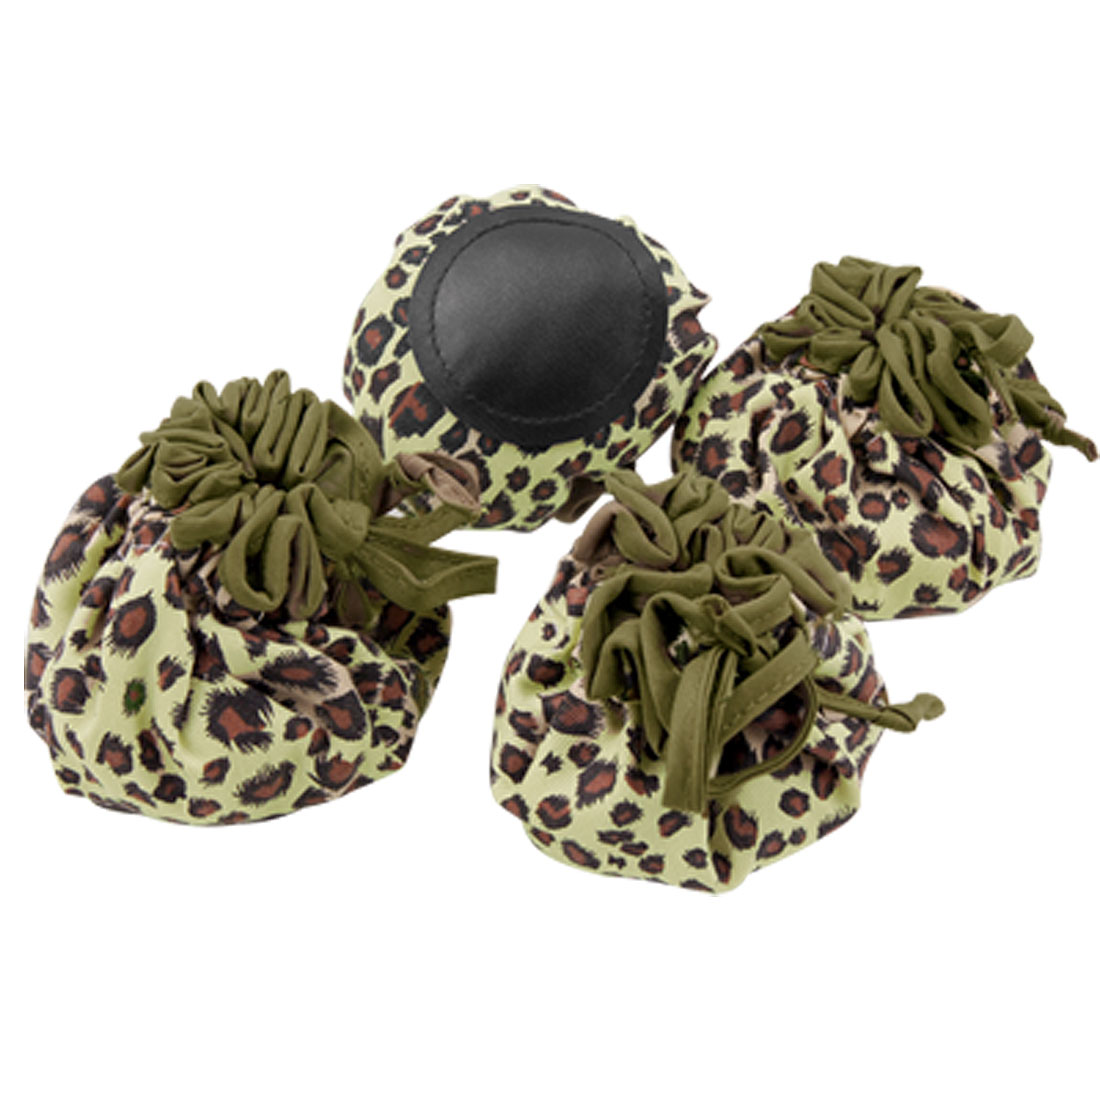 4 Pieces Cloth Chair Table Floor Foot Covers with Leopard Pattern